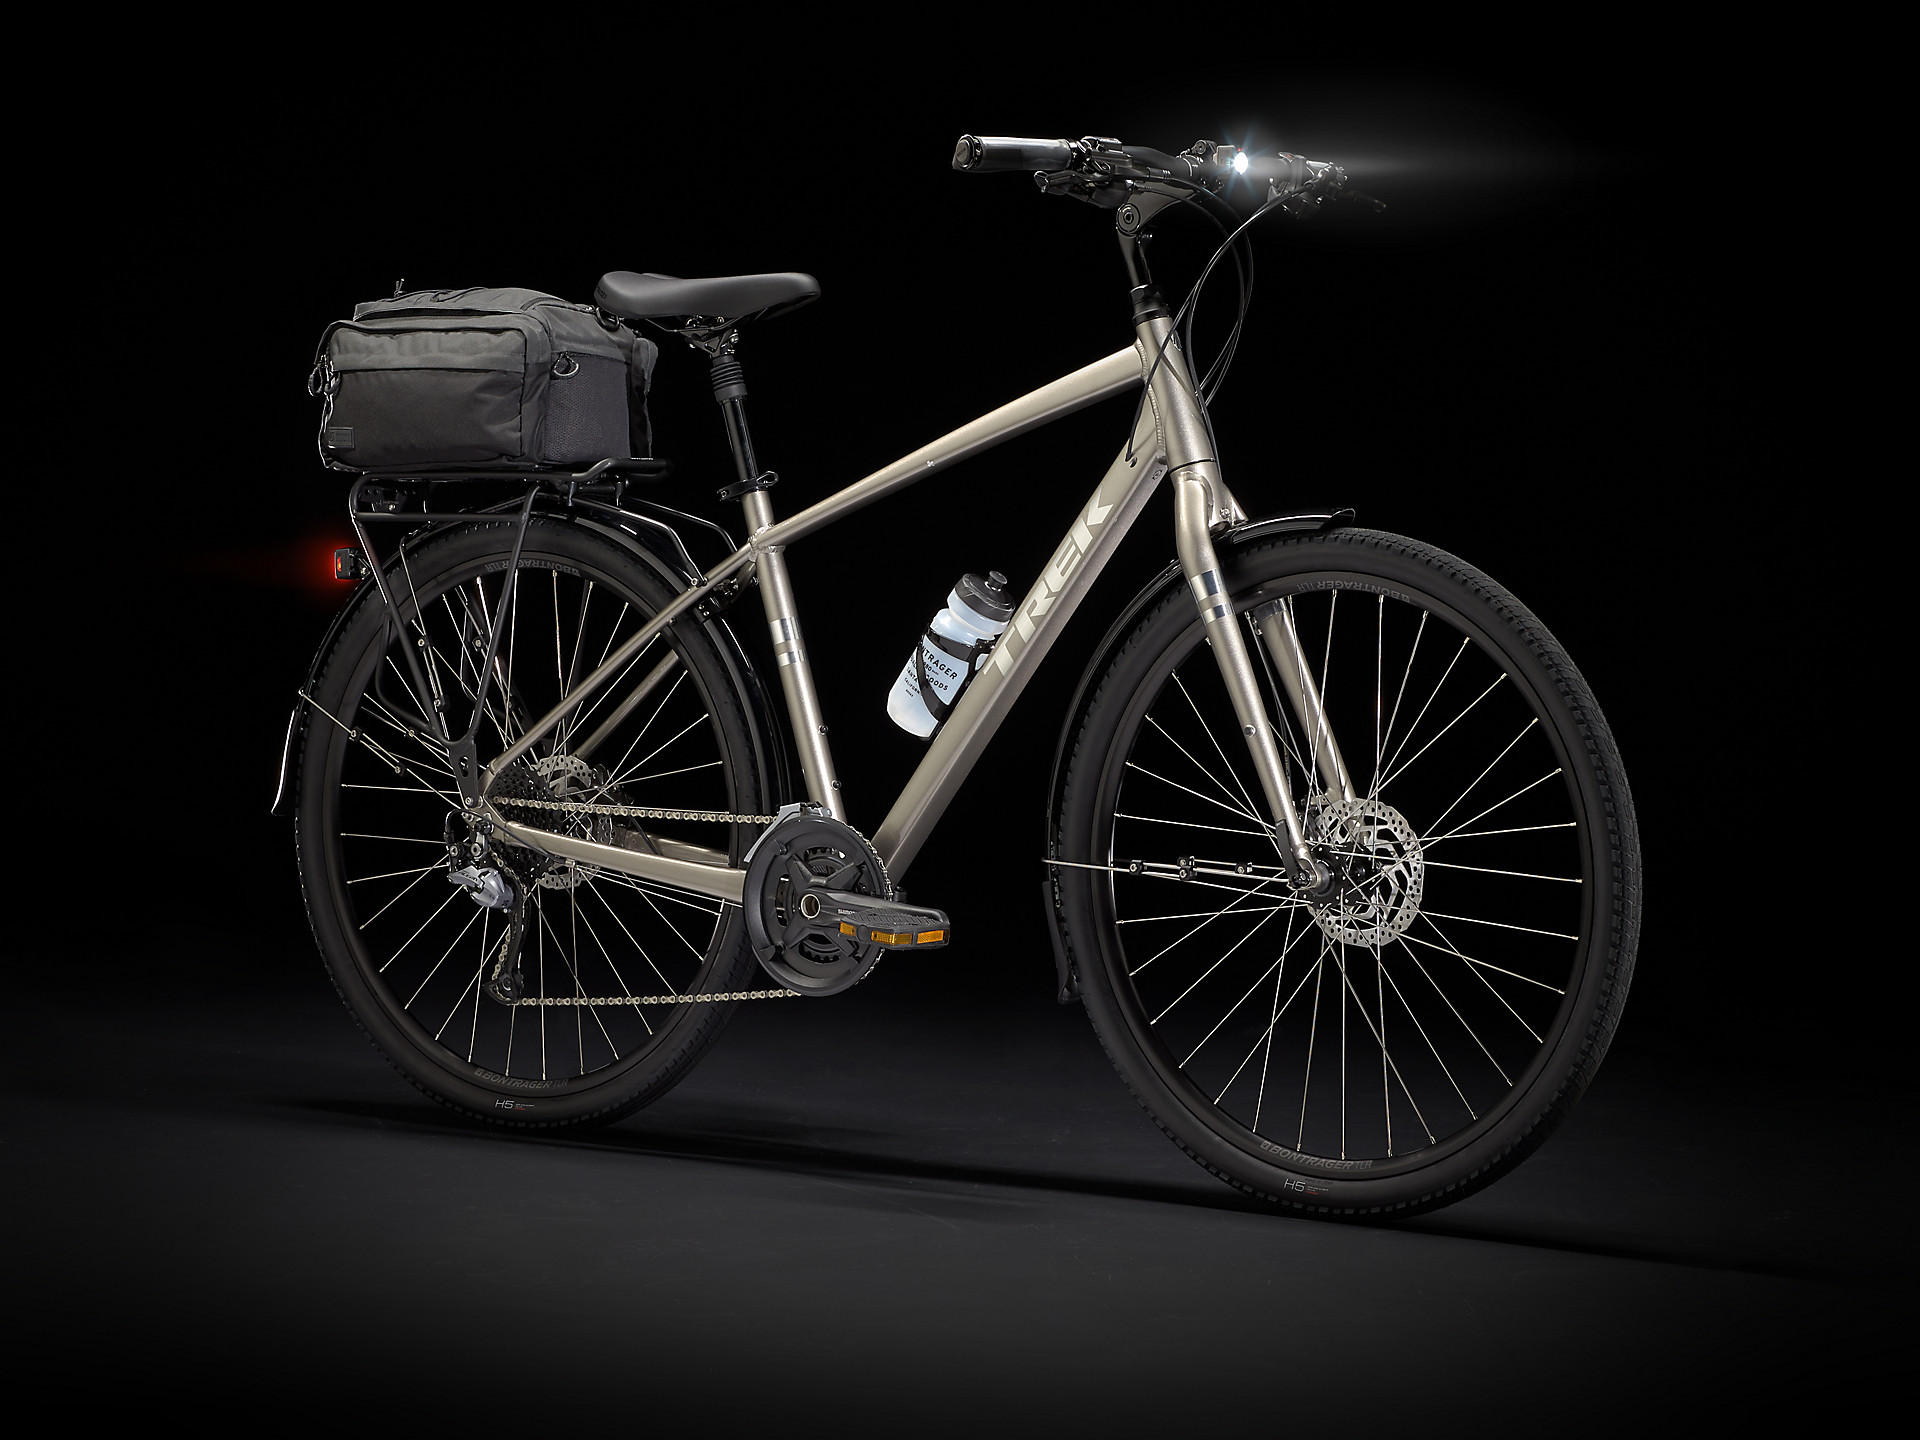 Trek Verve 2021 fully equipped bicycle